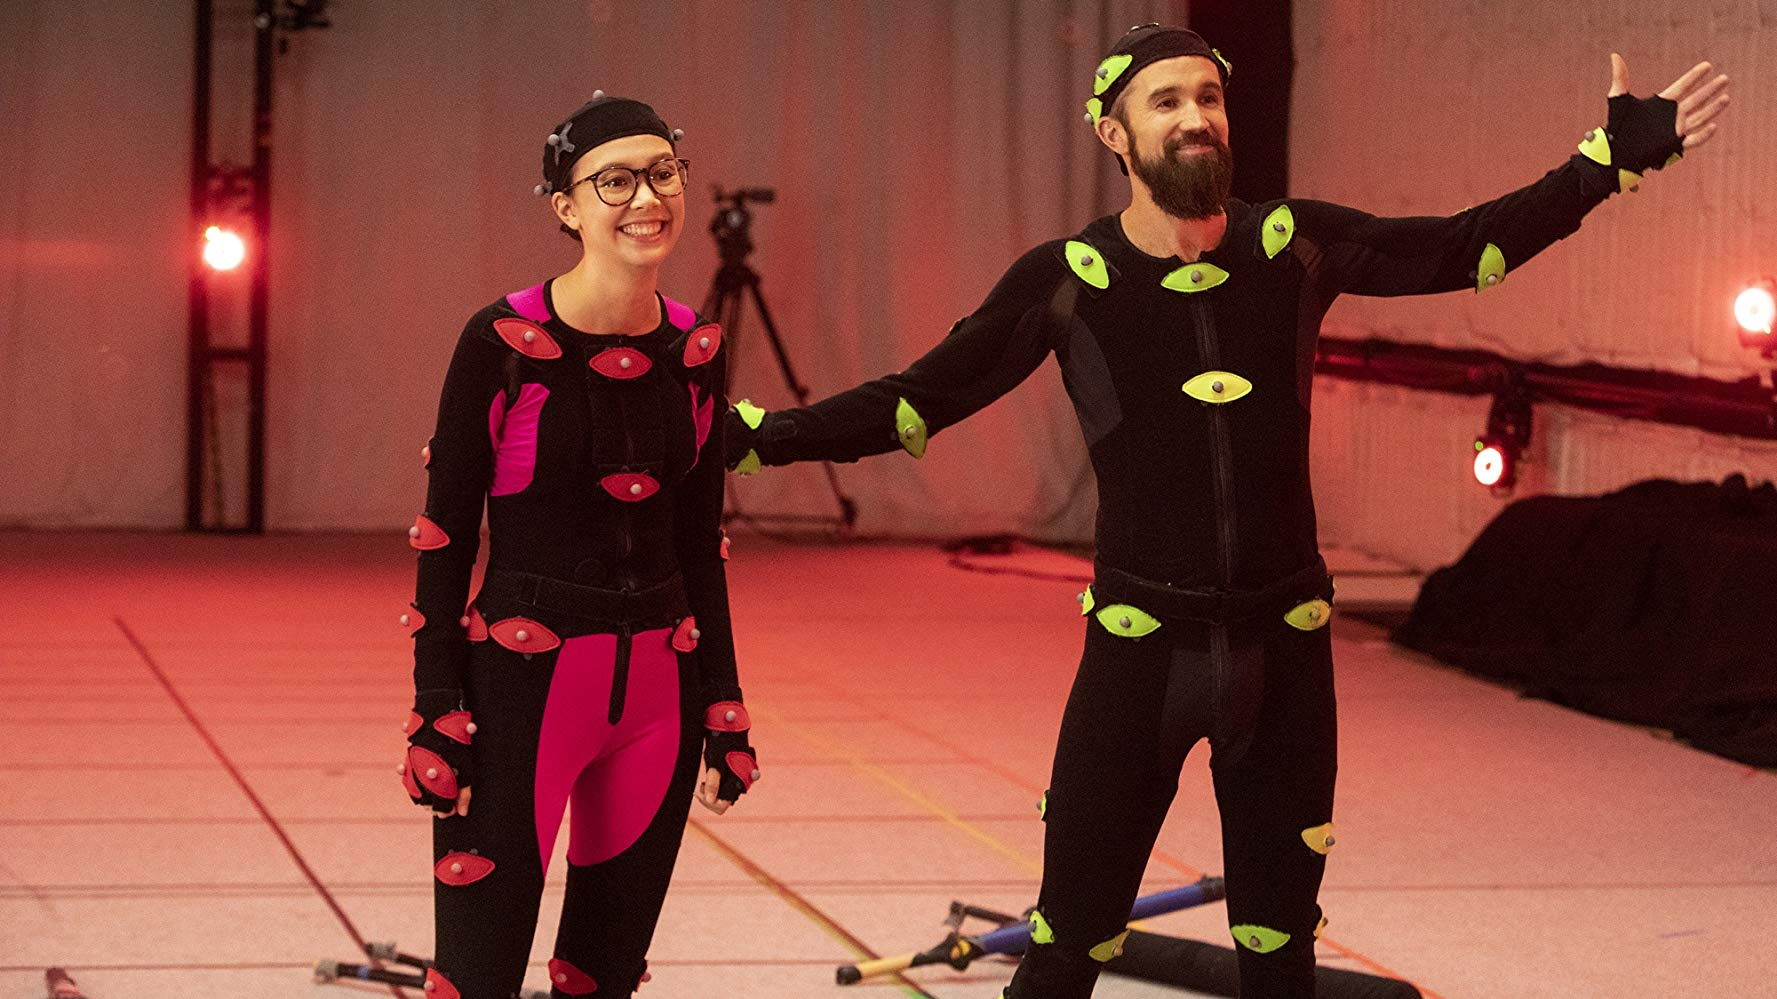 Poppy (left) and Ian (right) preparing the motion capture for the unmasking of the Masked Man